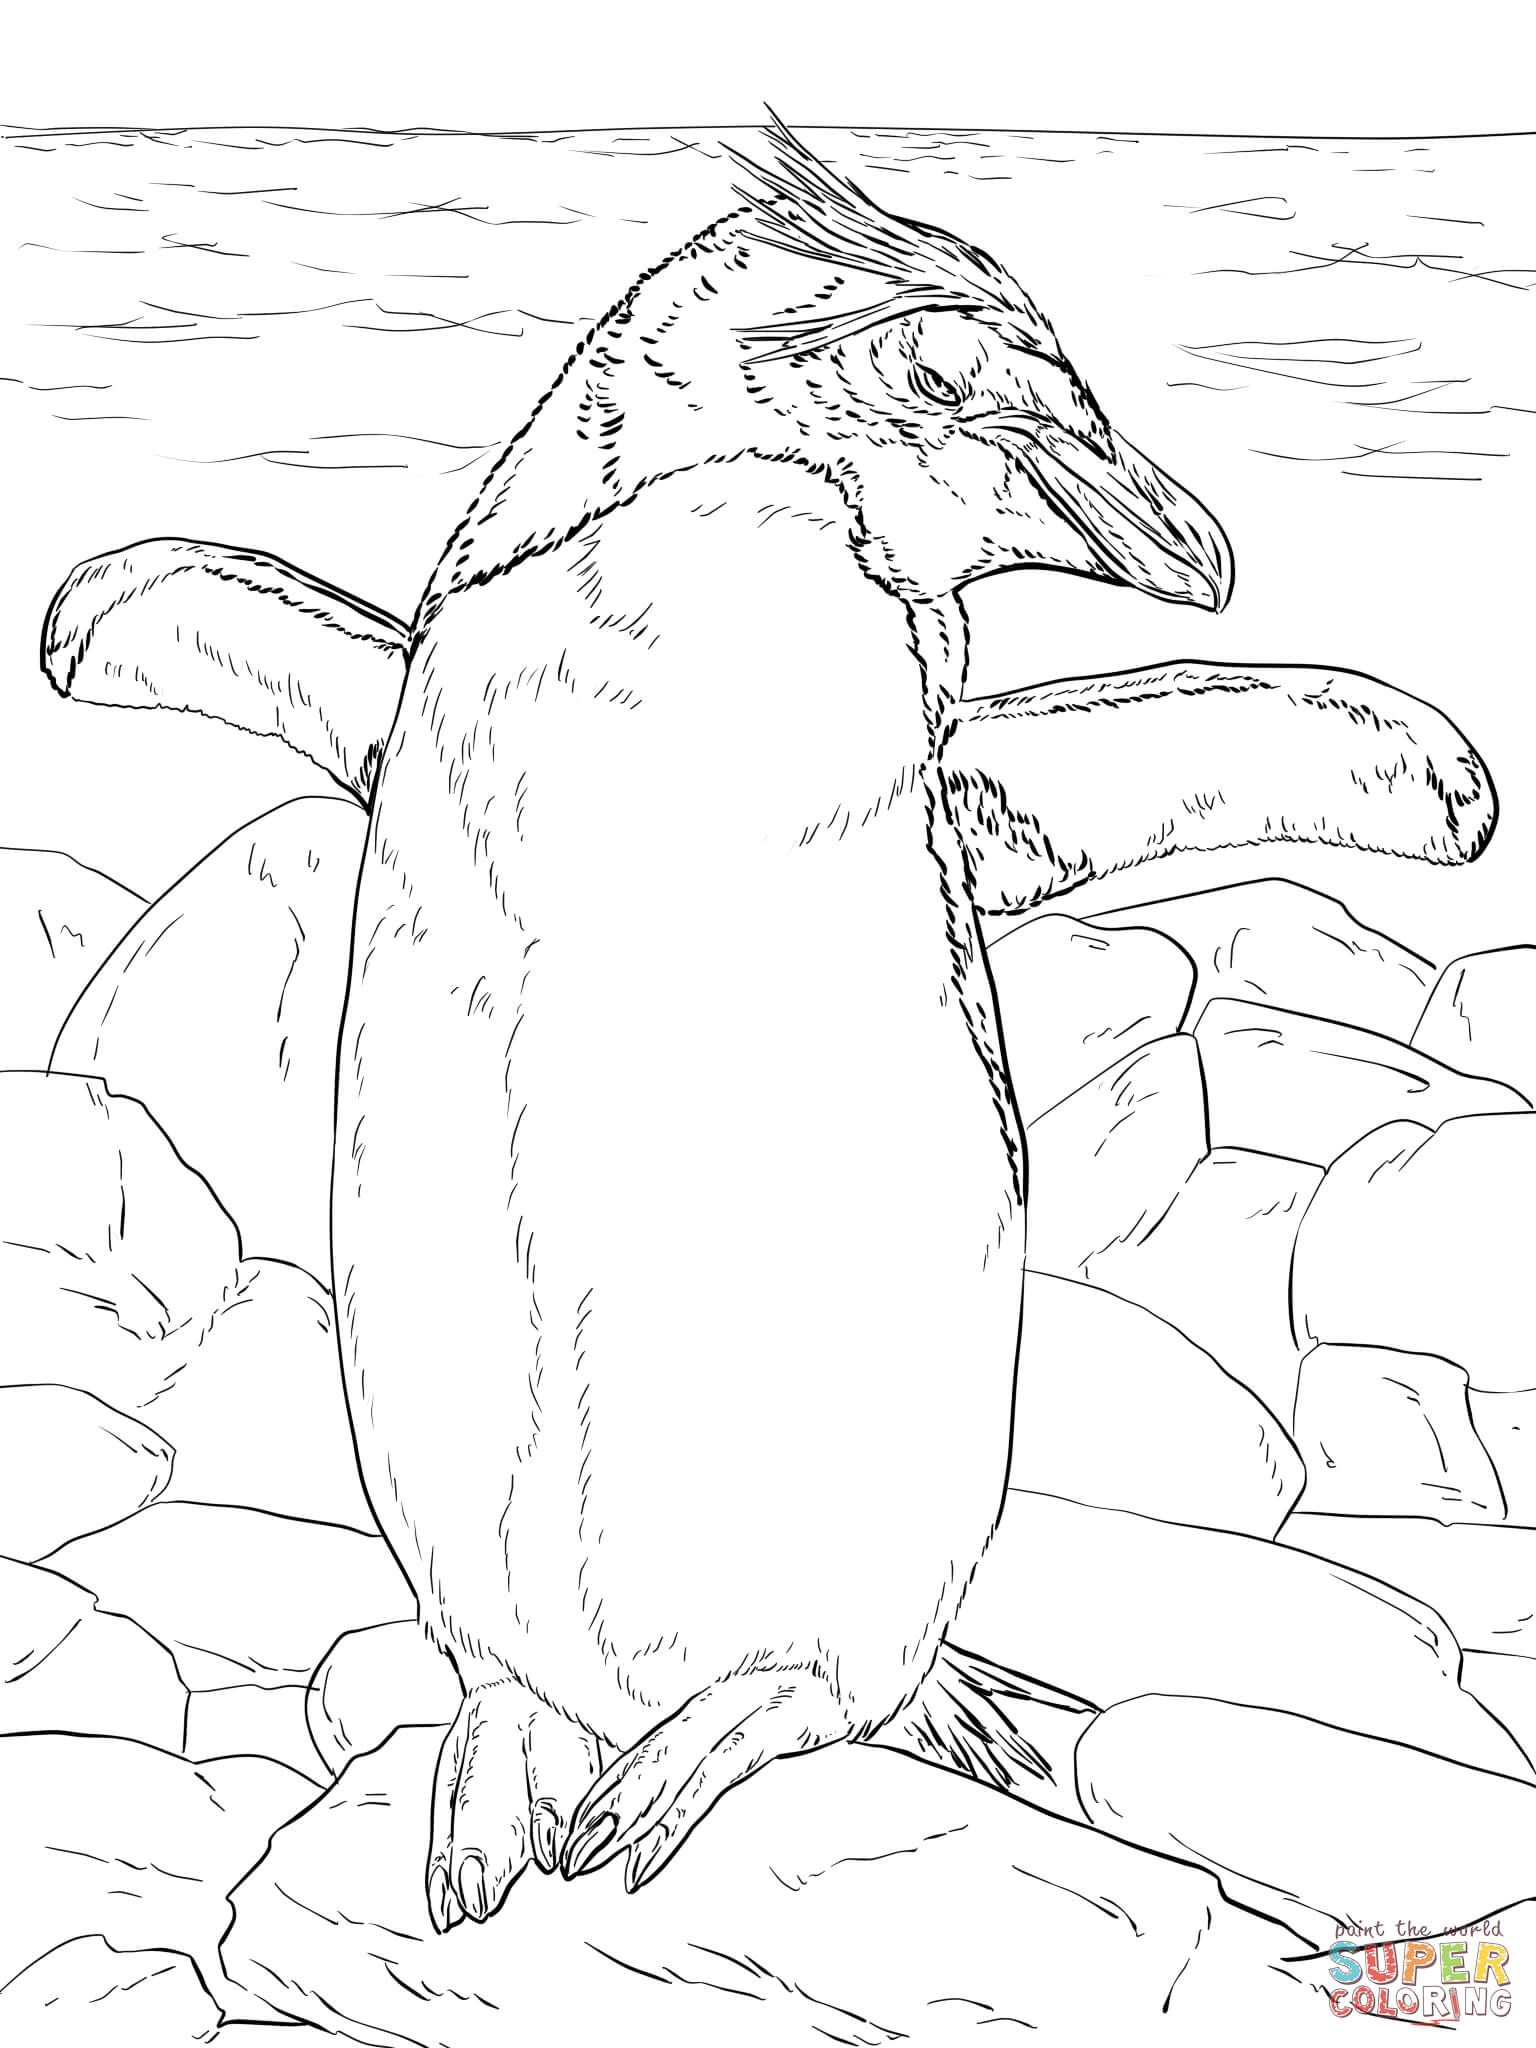 antartica coloring pages - photo#25